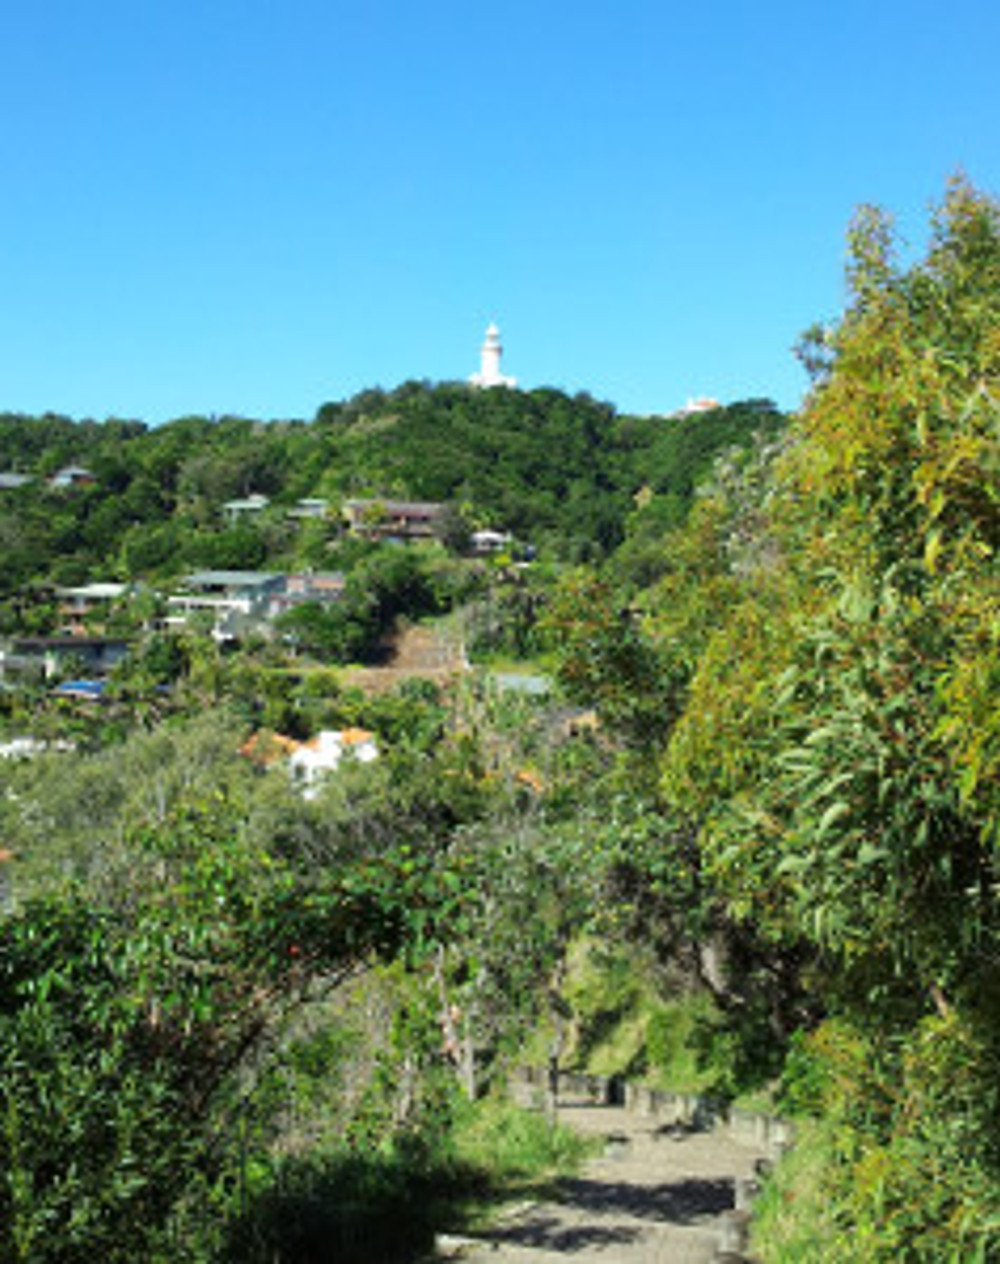 Byron Bay Lightouse from the cliff path